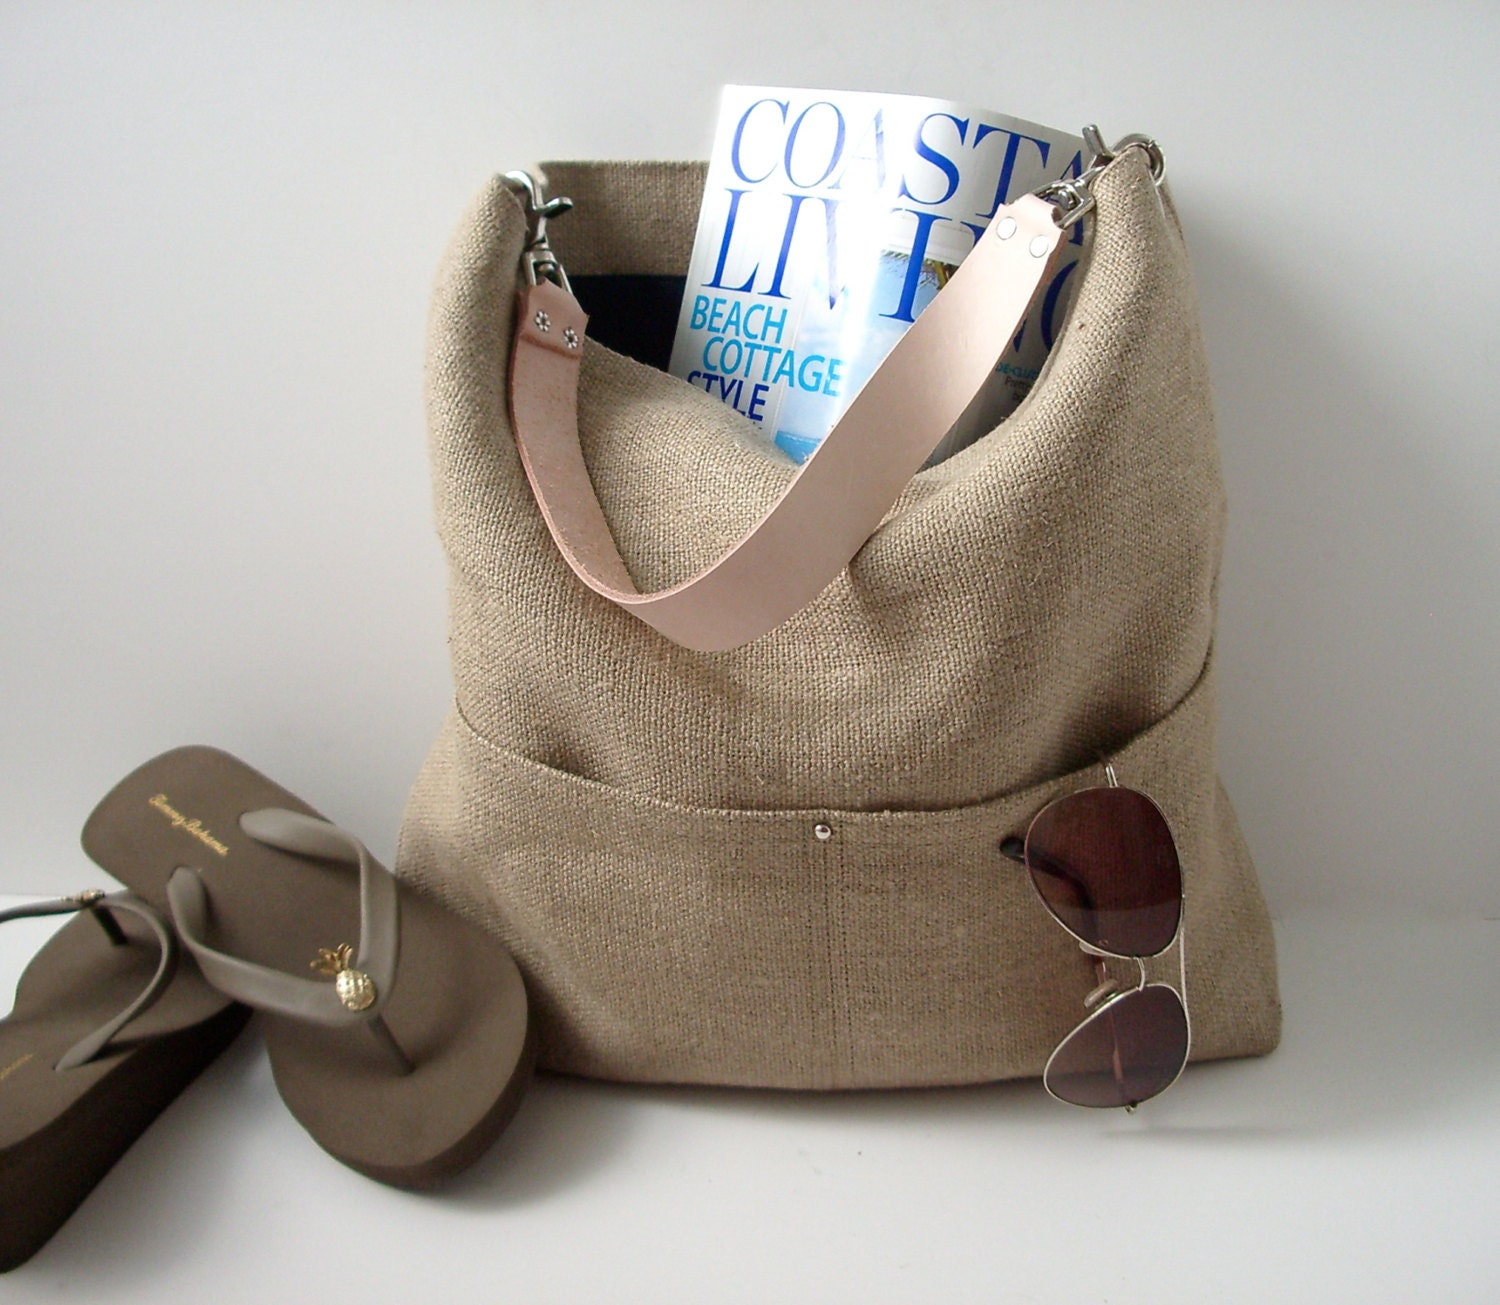 Resort Tote Summer Beach Bag Bucket Tote Hobo Tote Linen